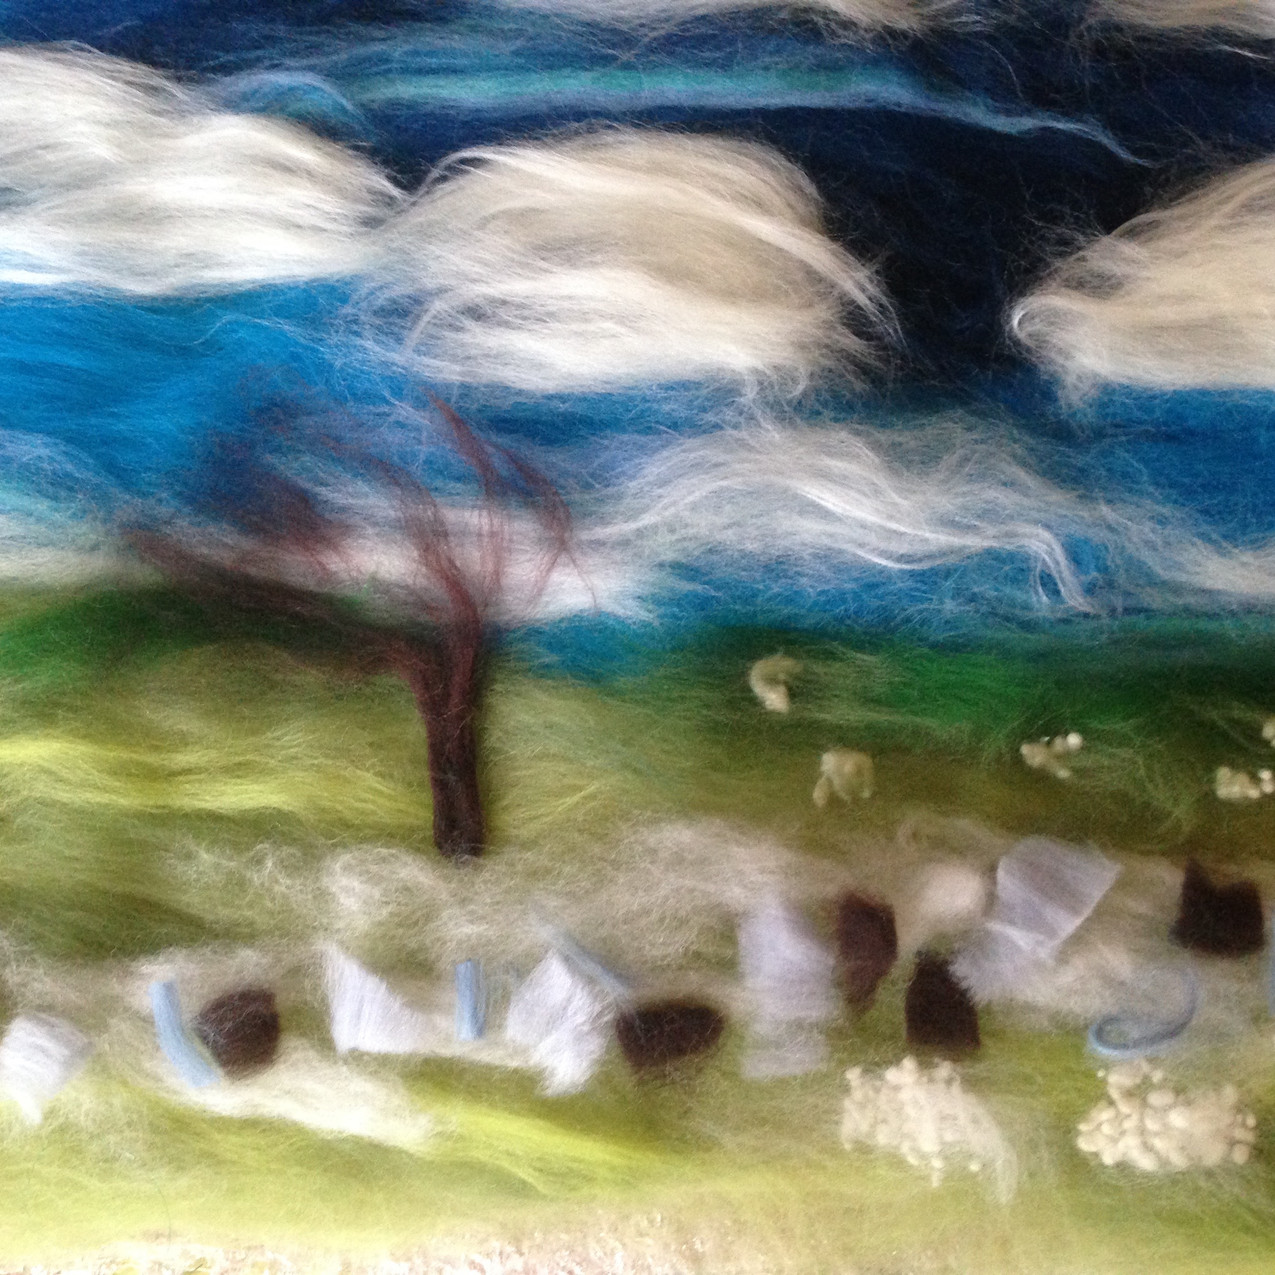 Wall & sheep-embroidery to be added